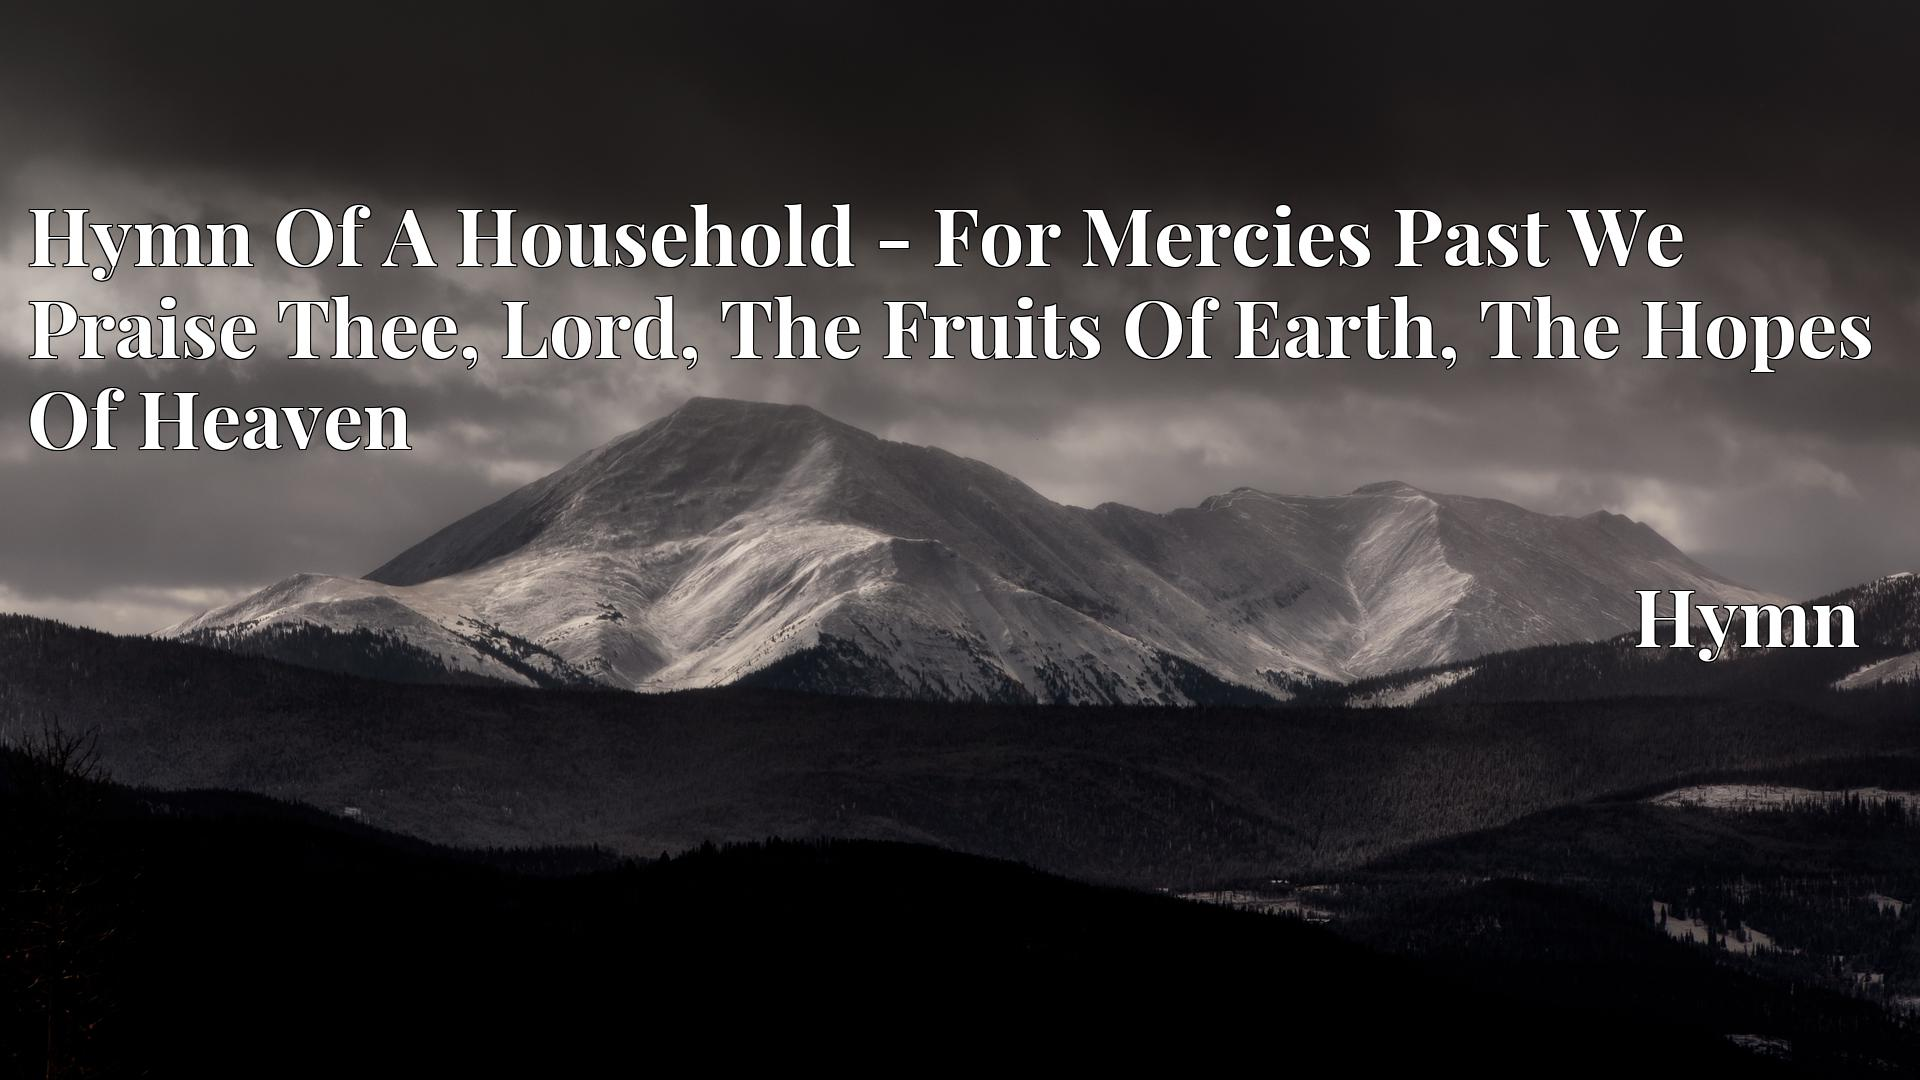 Hymn Of A Household - For Mercies Past We Praise Thee, Lord, The Fruits Of Earth, The Hopes Of Heaven - Hymn